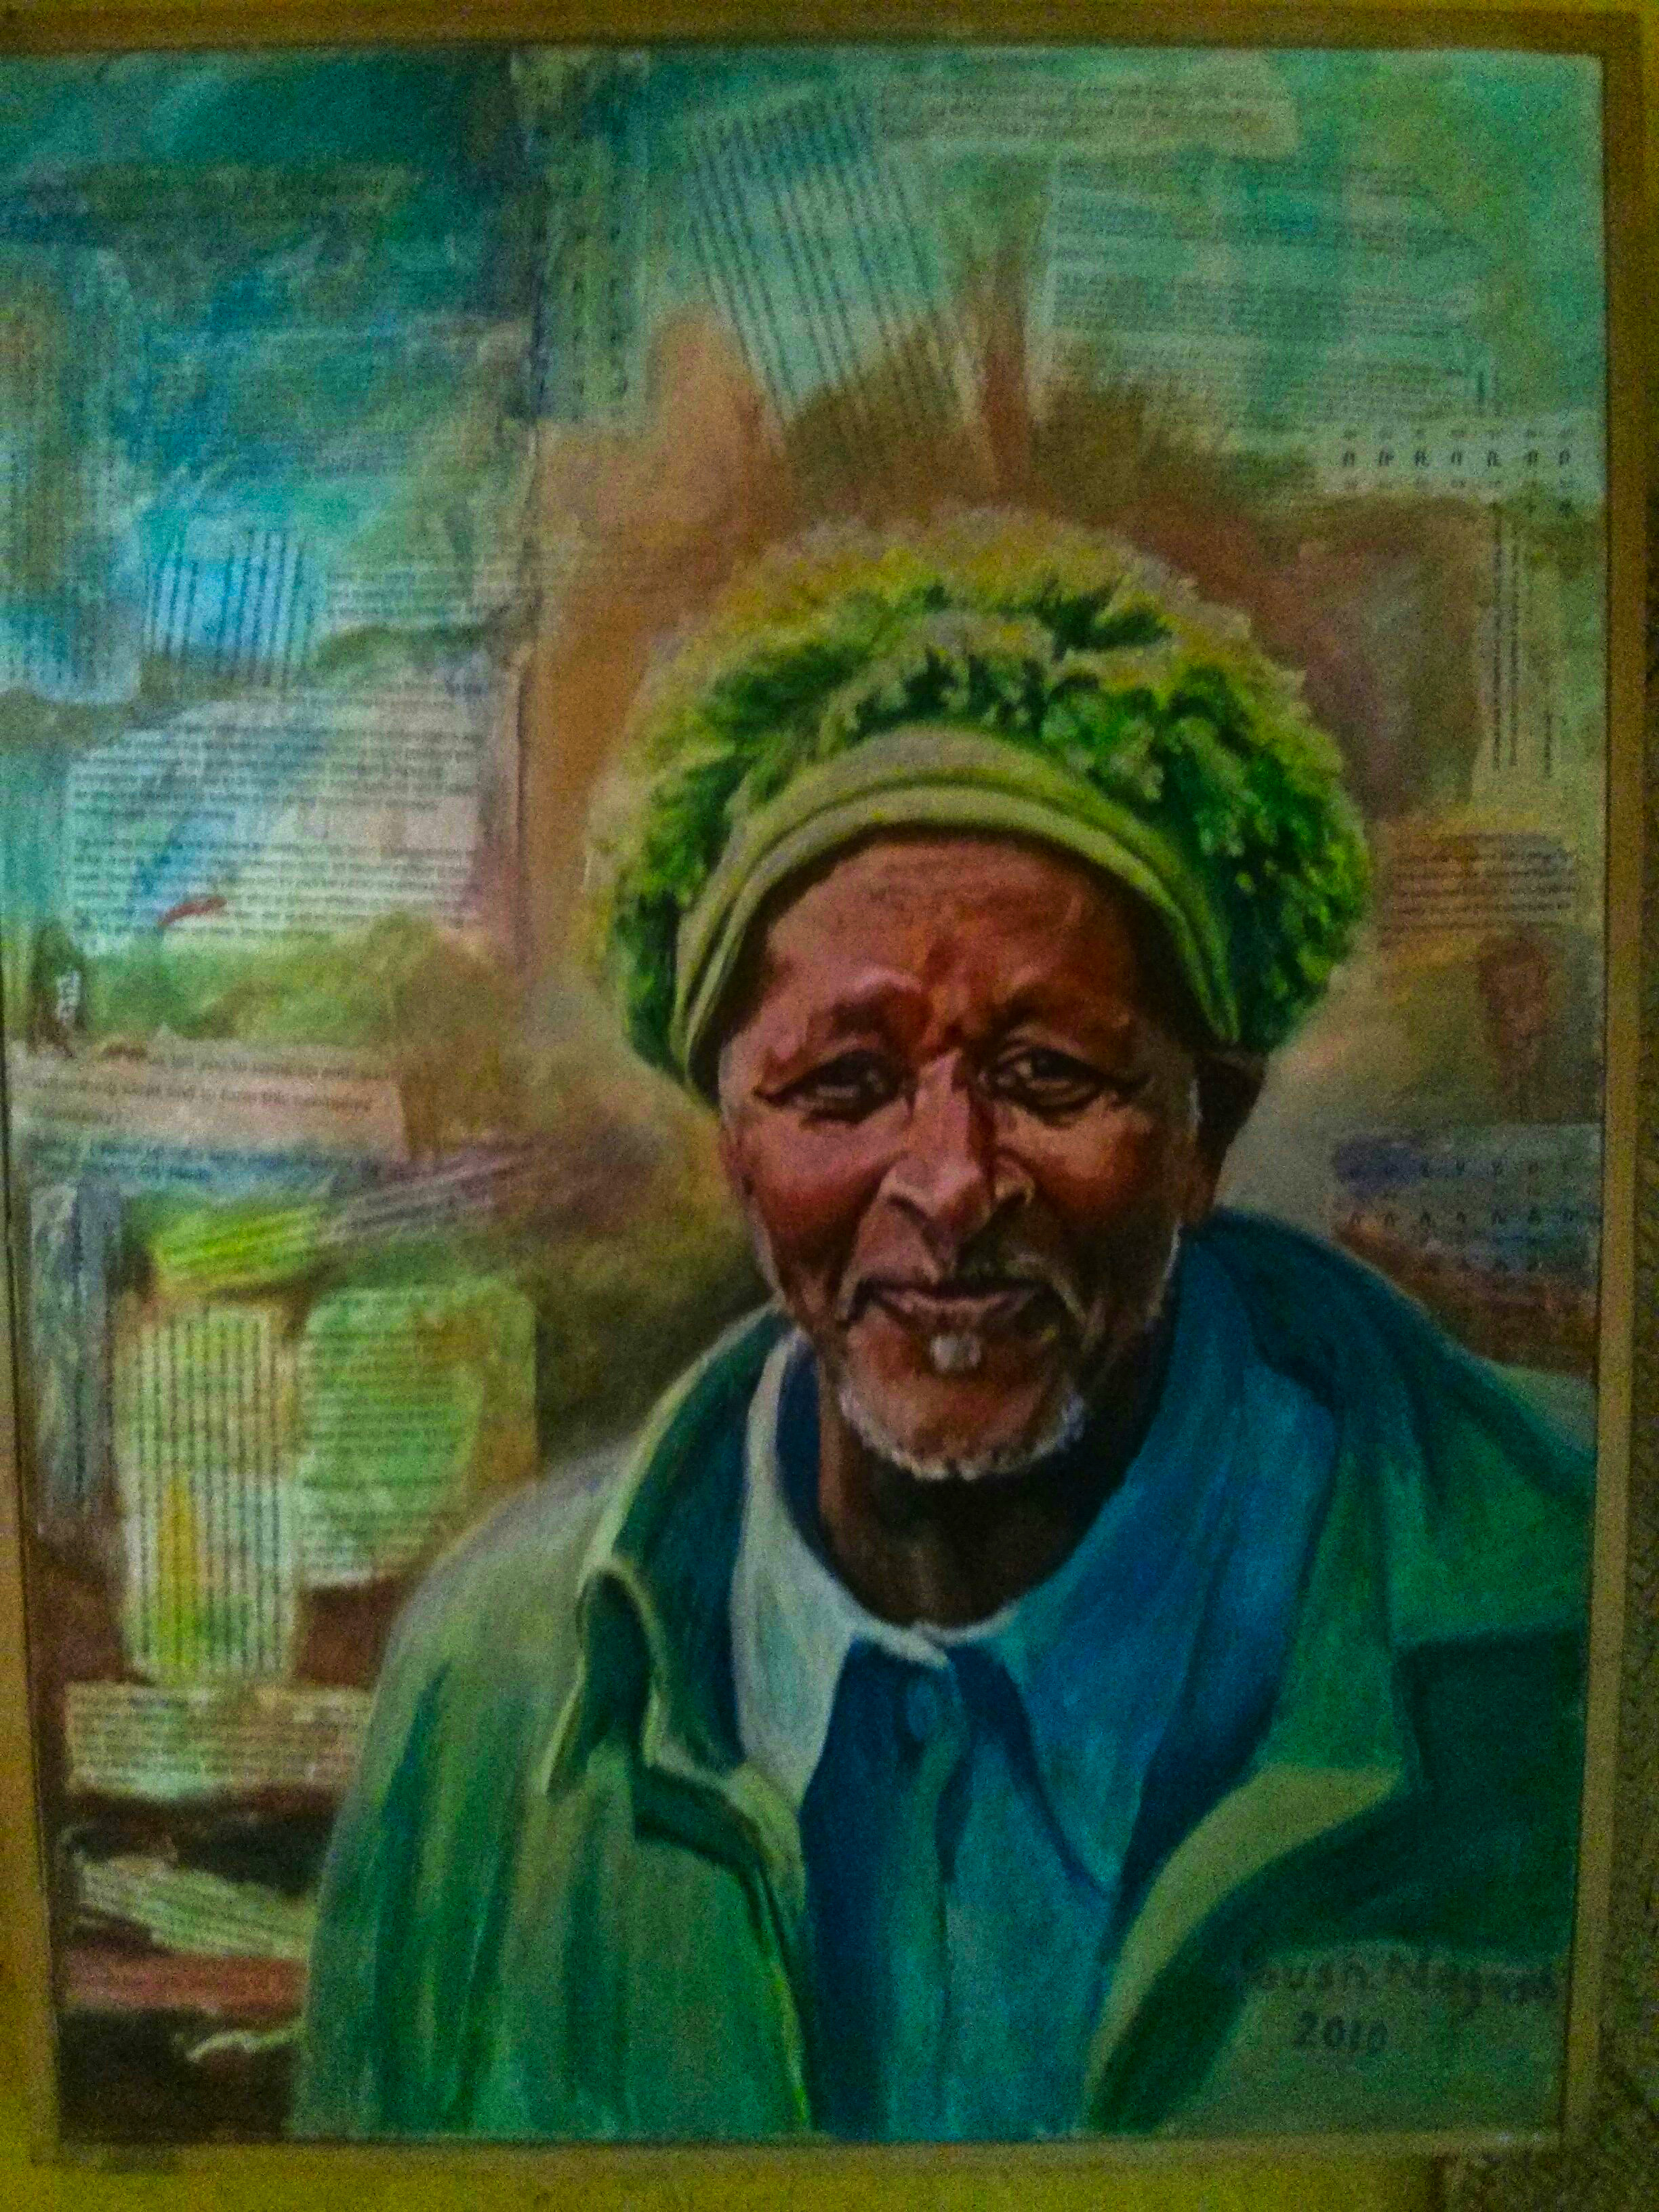 The founder of Awra Amba - Zumra Nuru as depicted on the wall of the community museum... (Photo Credit: Nick Colwill)